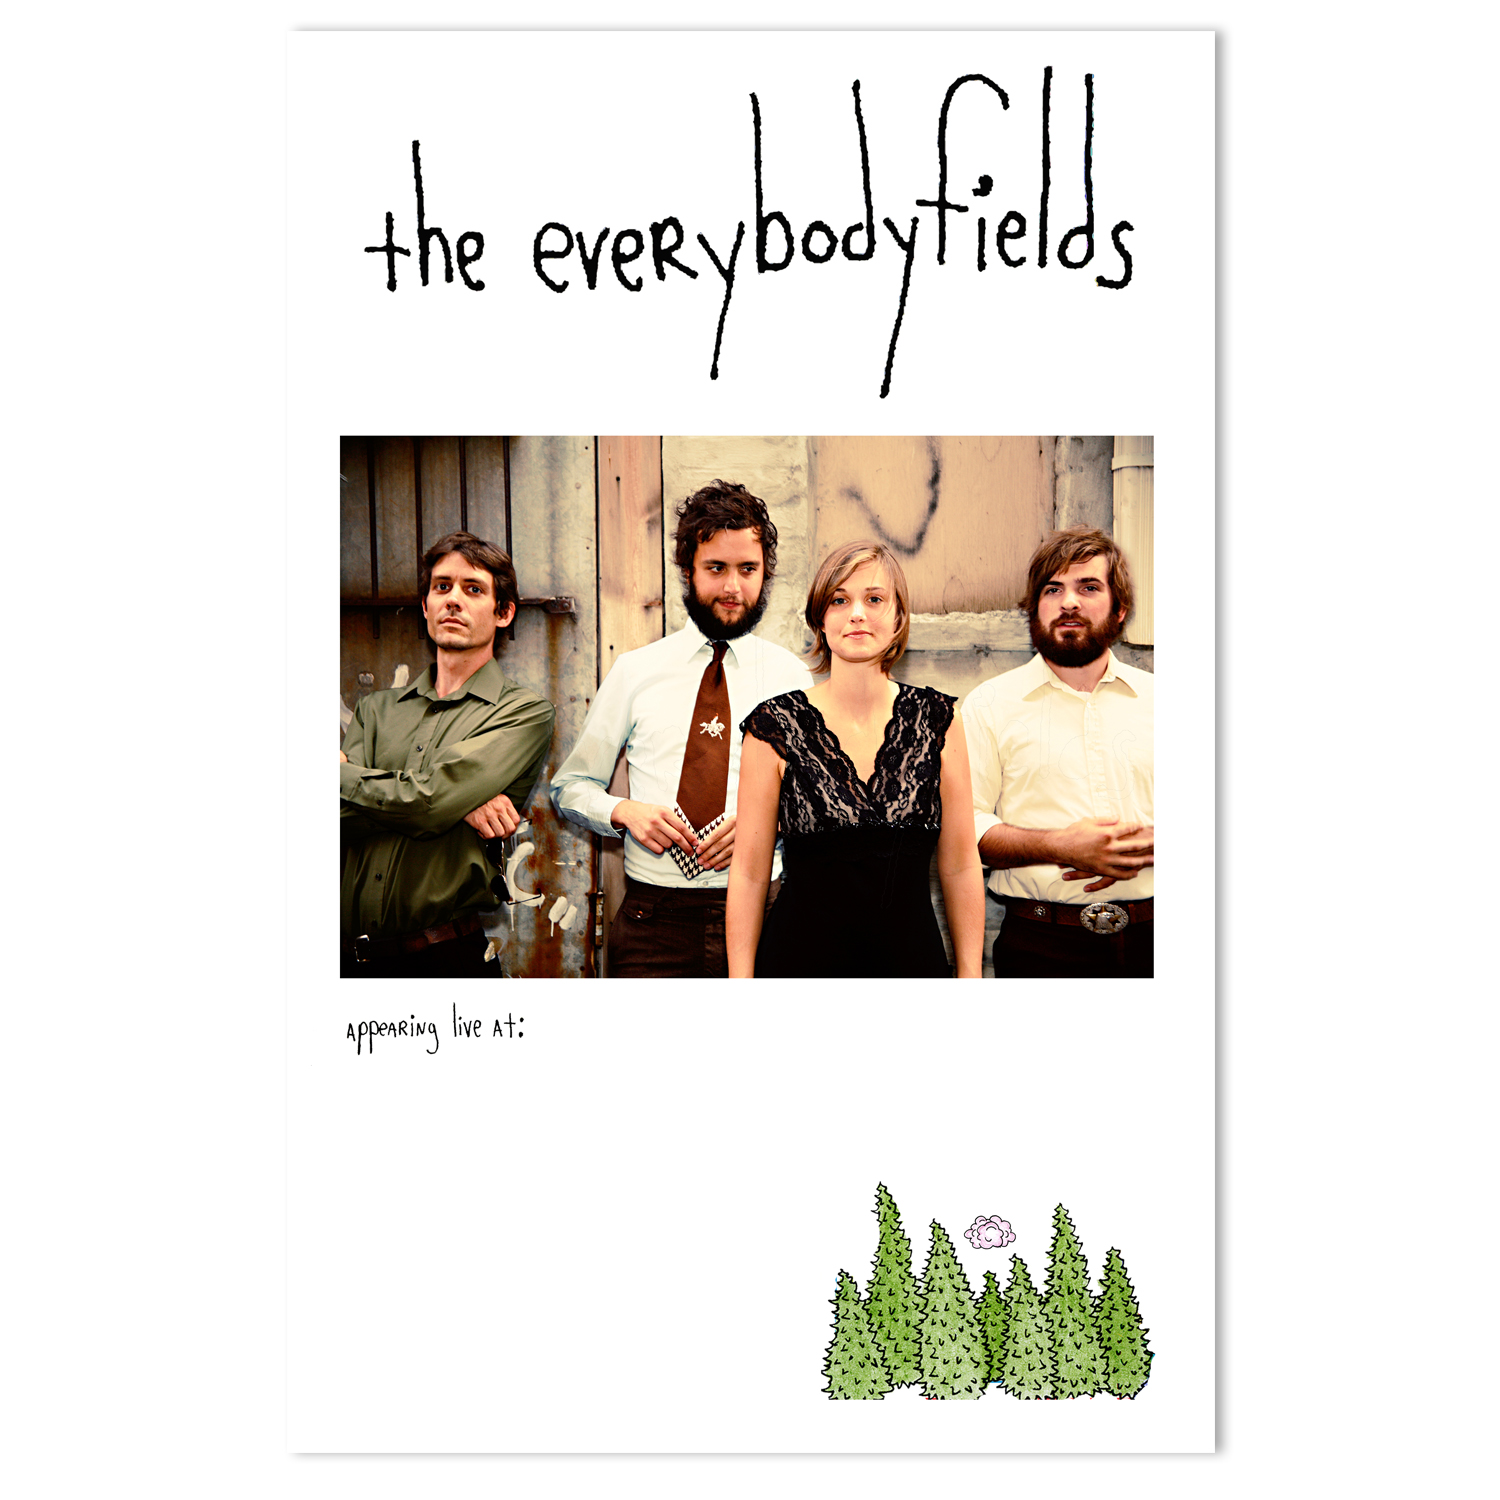 the everybodyfields Tour and Retail Poster |  Illustration by Sam Quinn, Photo by Julie Roberts